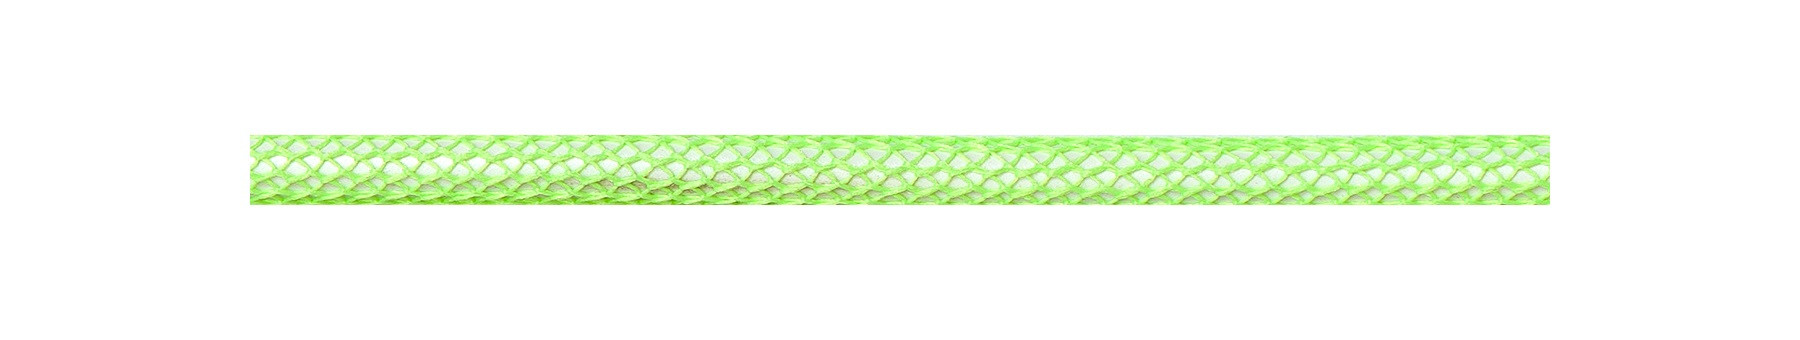 Textile Cable Neon Green Netlike Covering